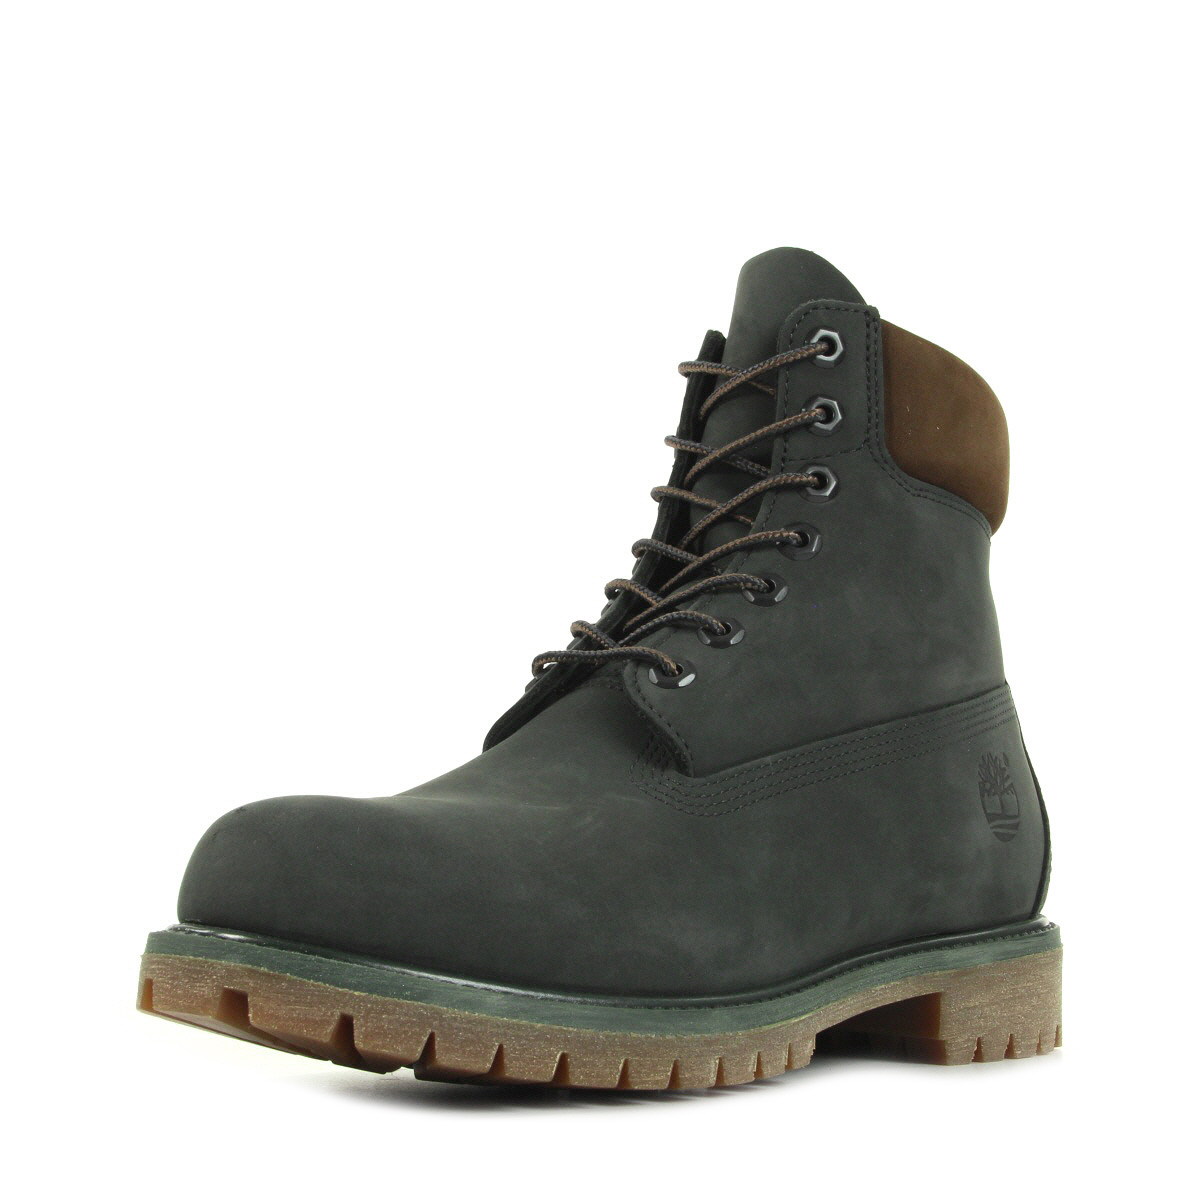 2211e11d Timberland AF 6in Premium Medium Green Nubuck CA17Q4, Boots homme